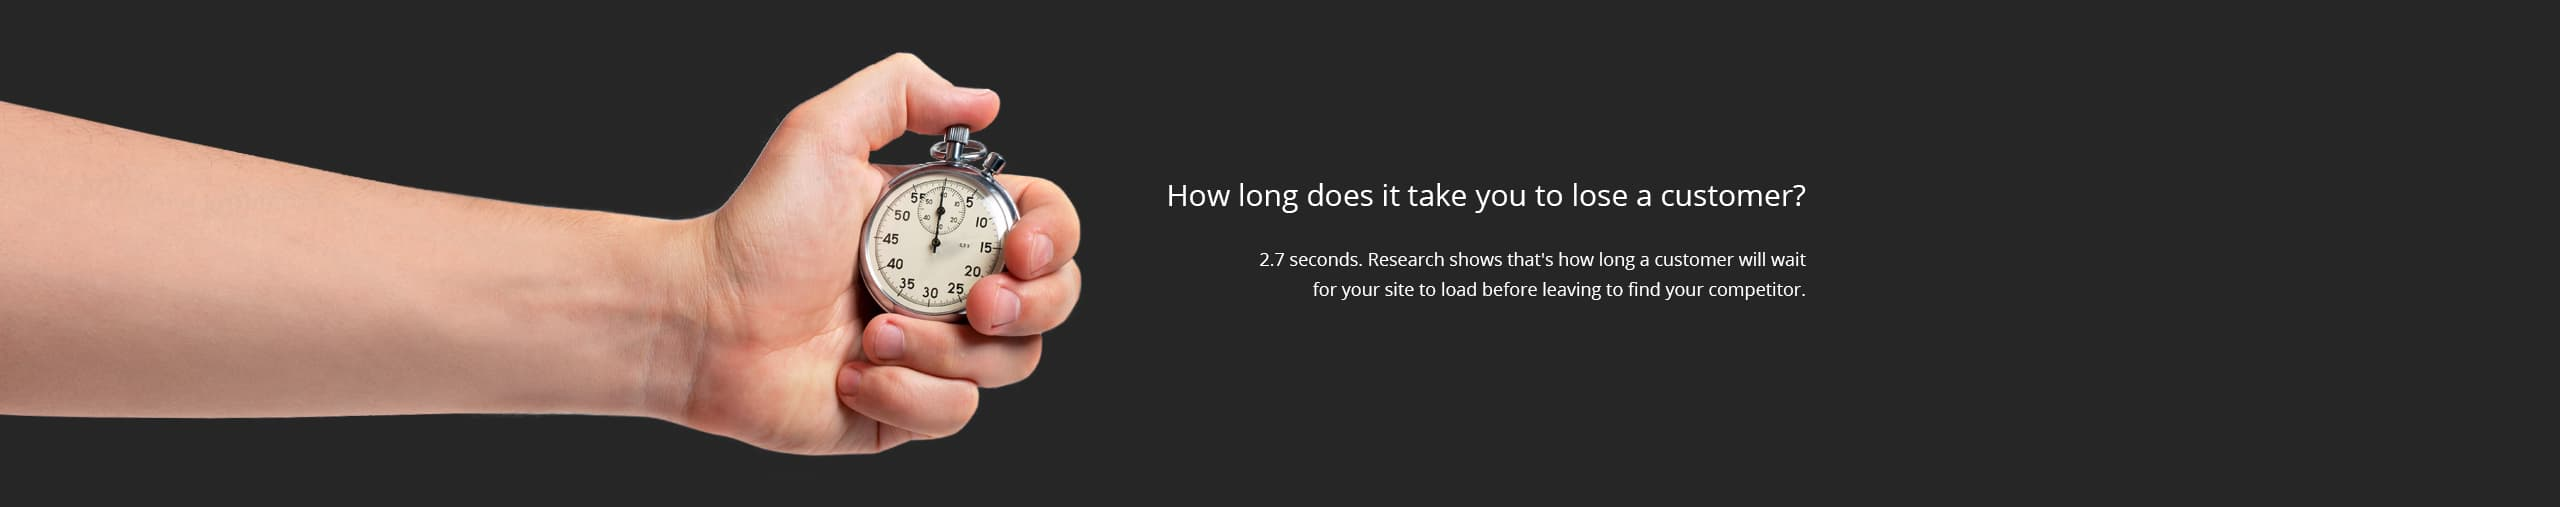 How long does it take you to lose a customer? 2.7 seconds. Research shows that's how long a customer will wait for your site to load before leaving to find your competitor.